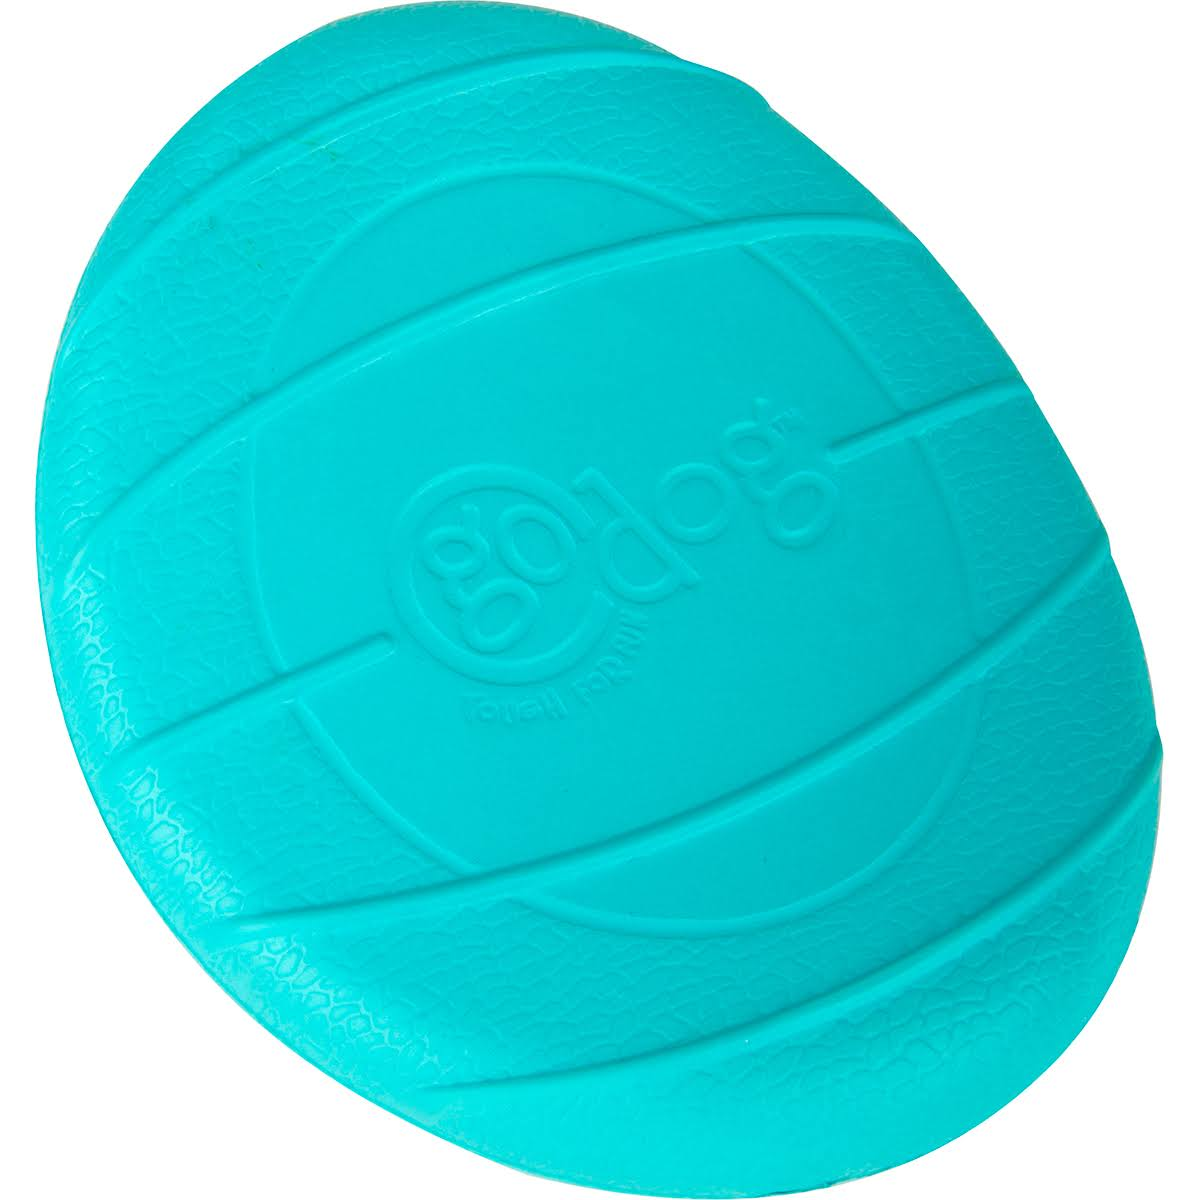 Go Dog Rhino Play Flip Dog Toy - Large, Teal